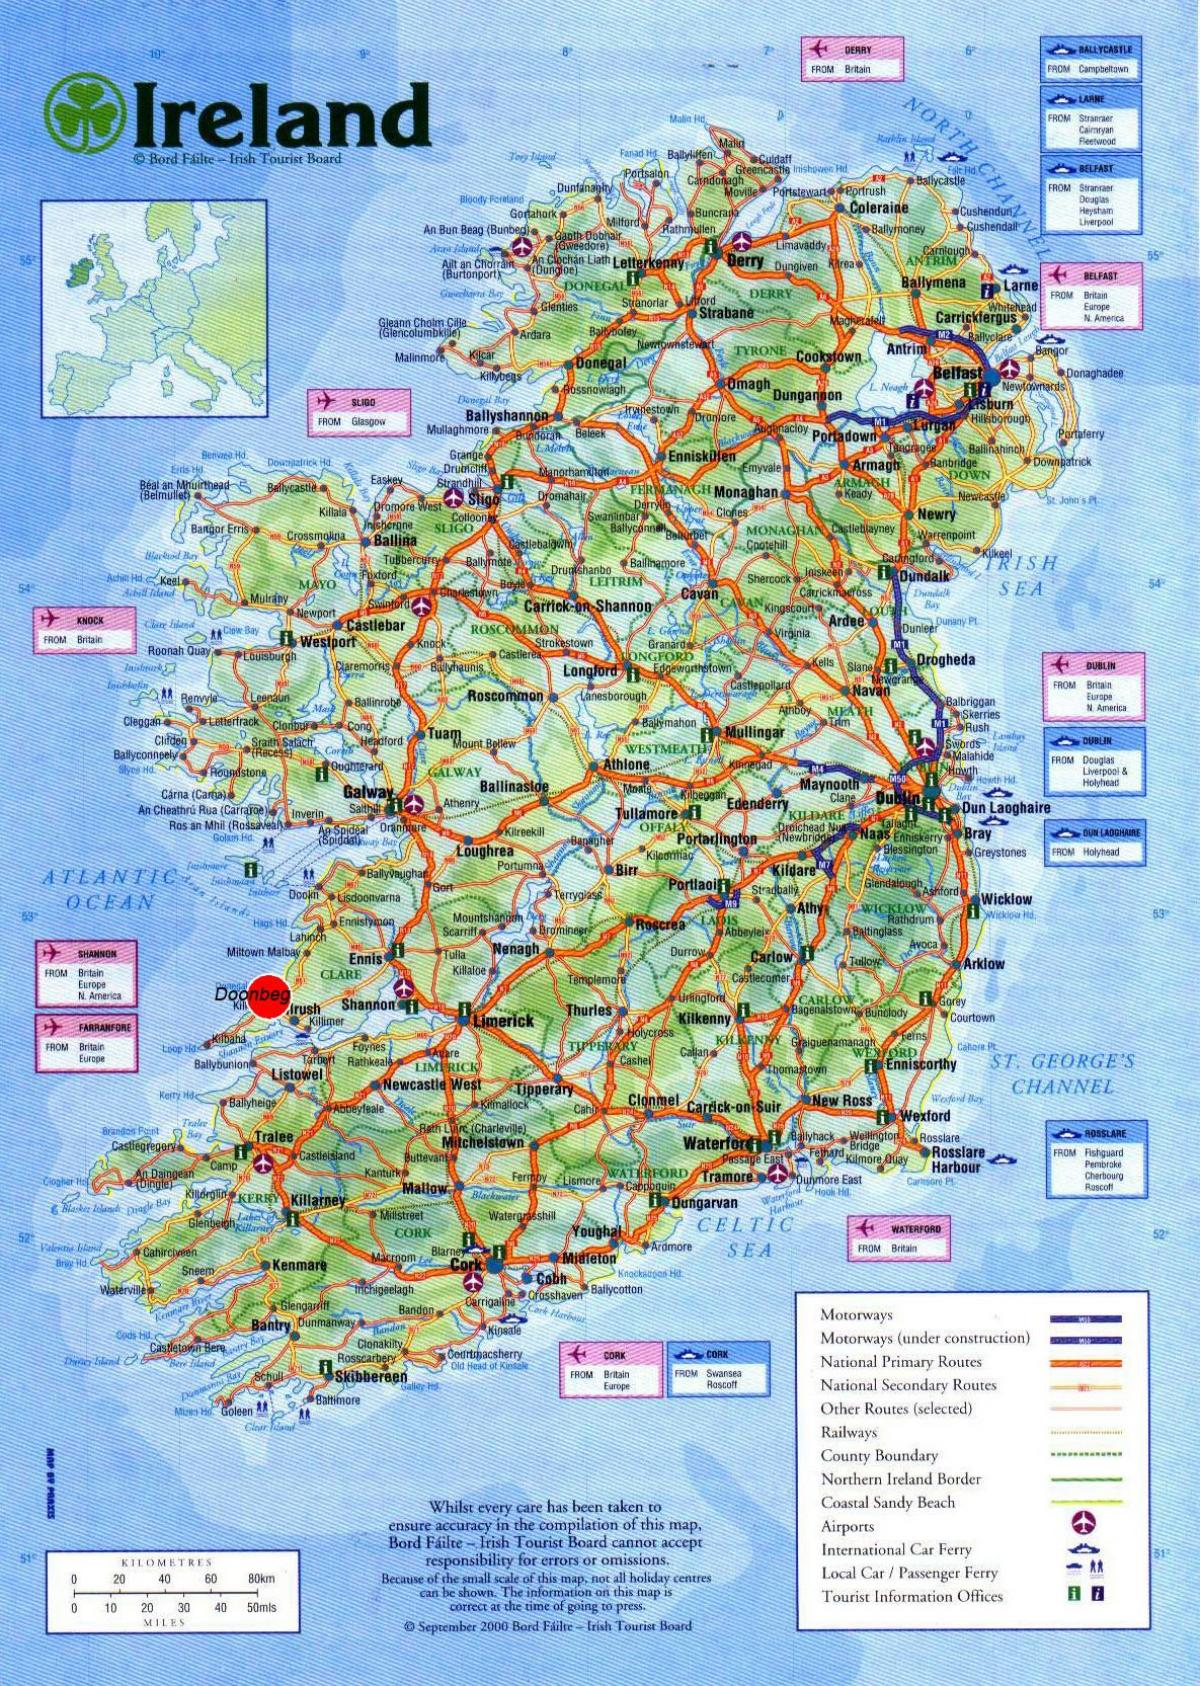 map of ireland showing tourist attractions